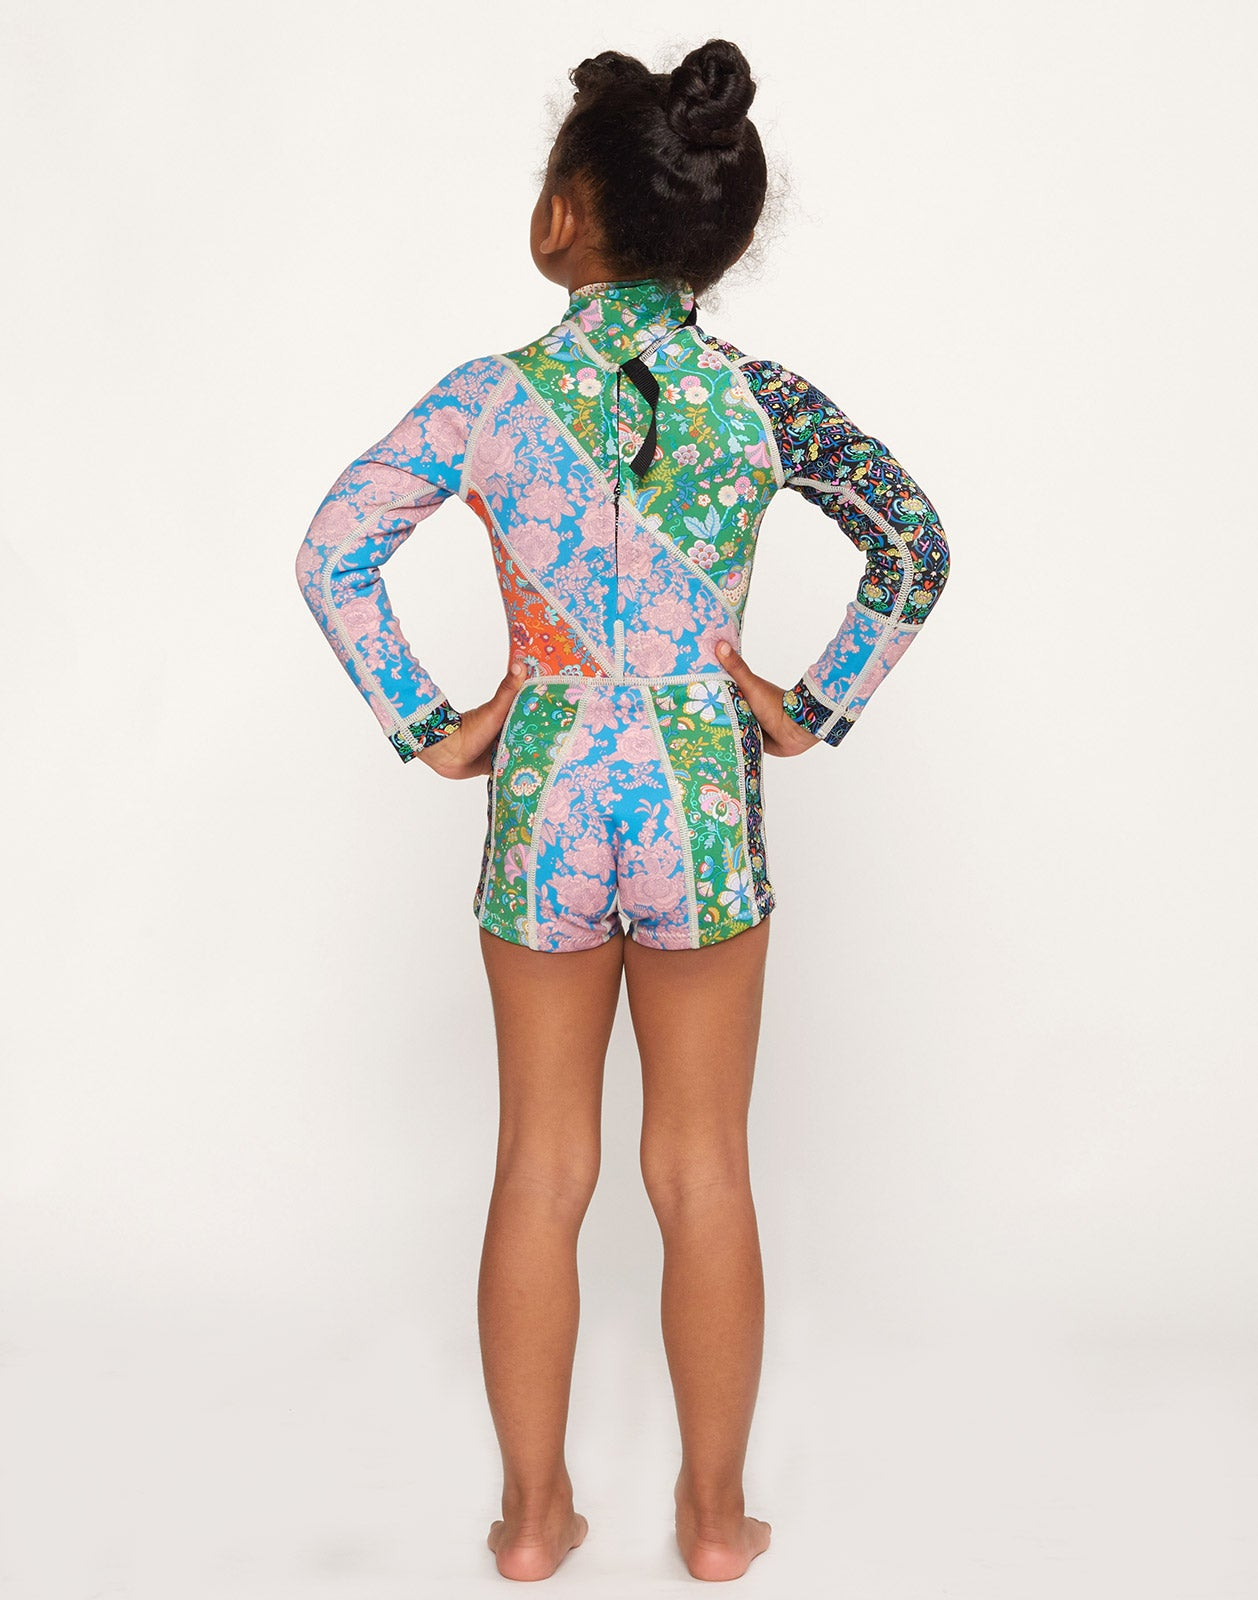 Full back view of model wearing Girl's Floral Wetsuit.